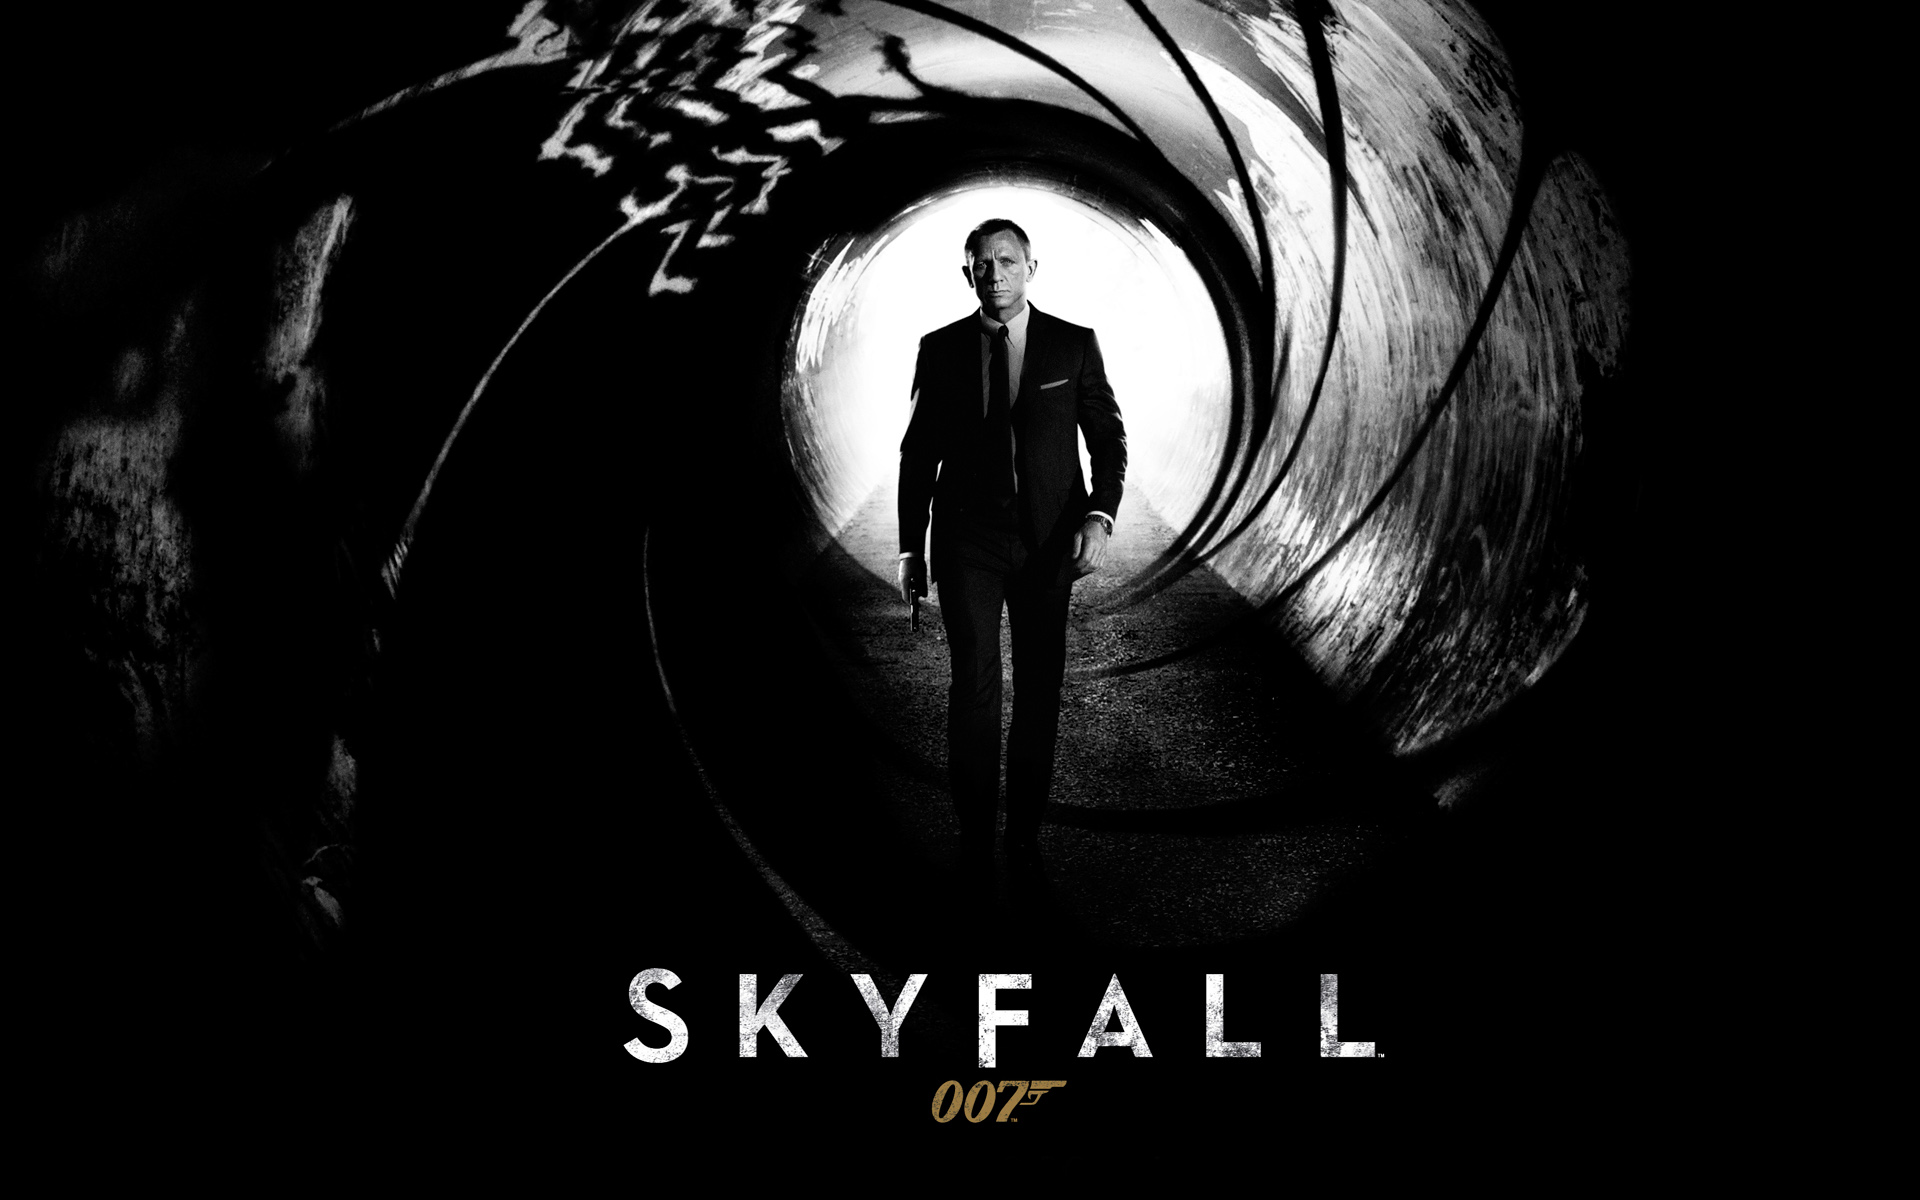 Skyfall 2012 Movie 1039.26 Kb